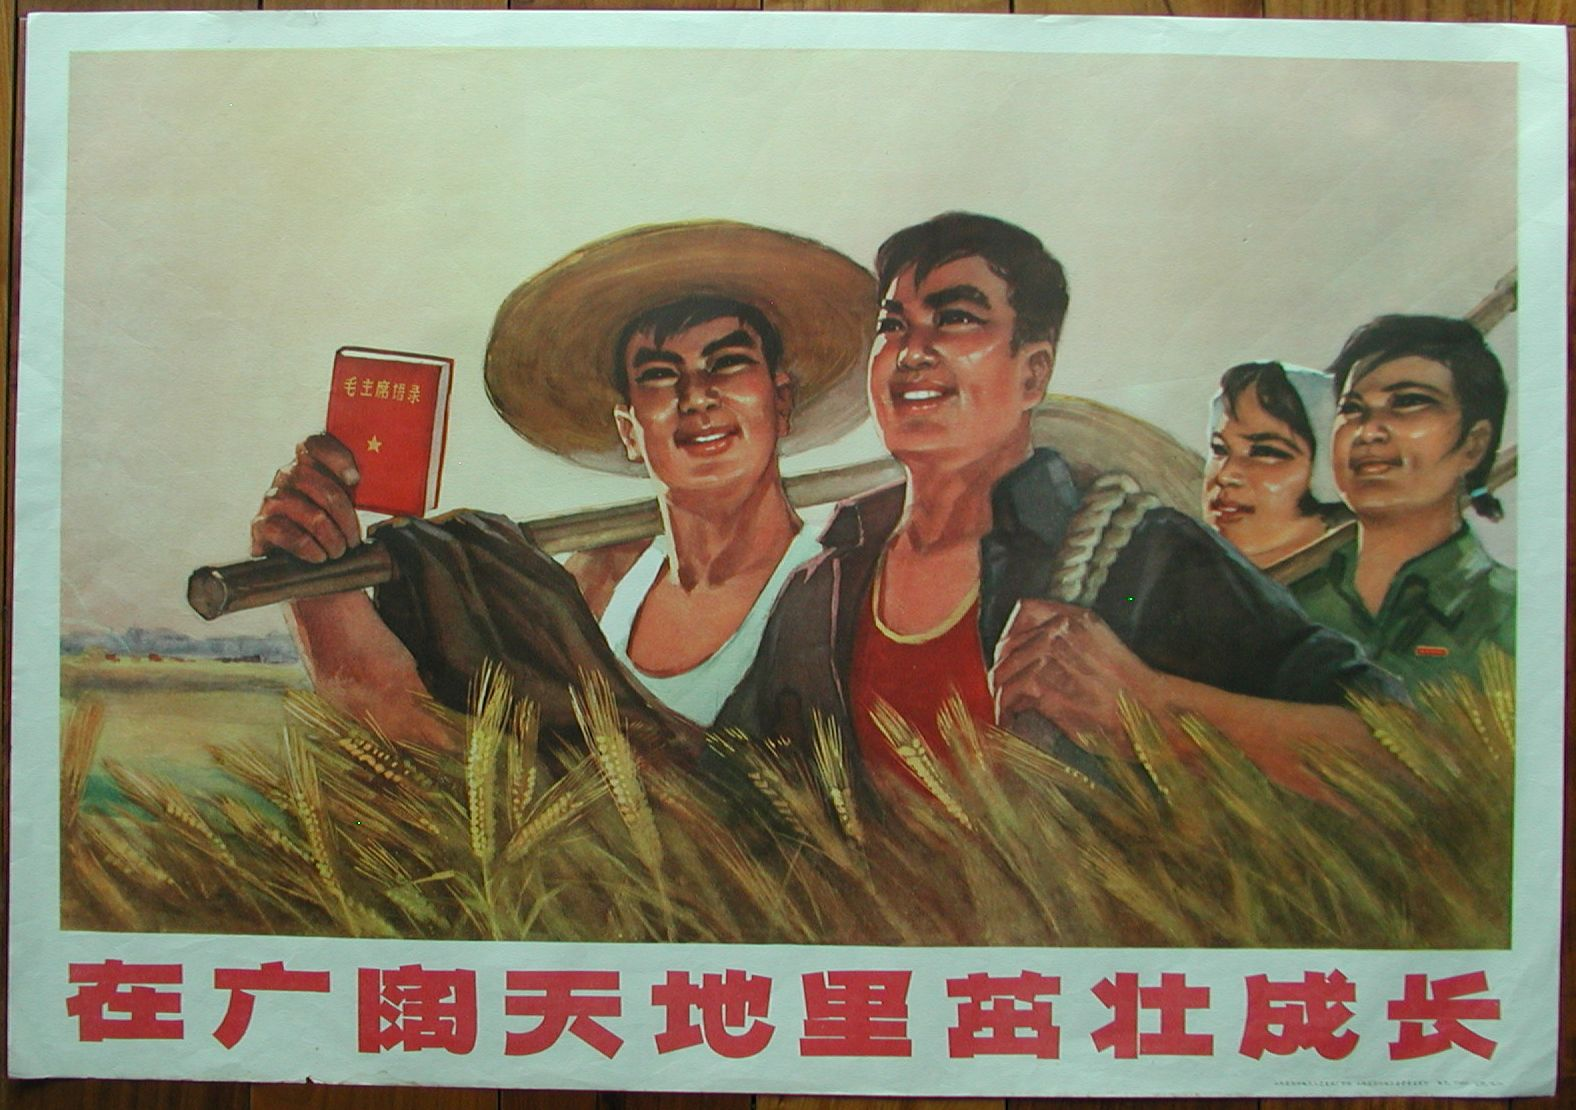 cultural revolution in china The cultural revolution (1966-76) was a mass campaign that transformed government and society in the people's republic of china according to its leader and figurehead mao zedong, the.